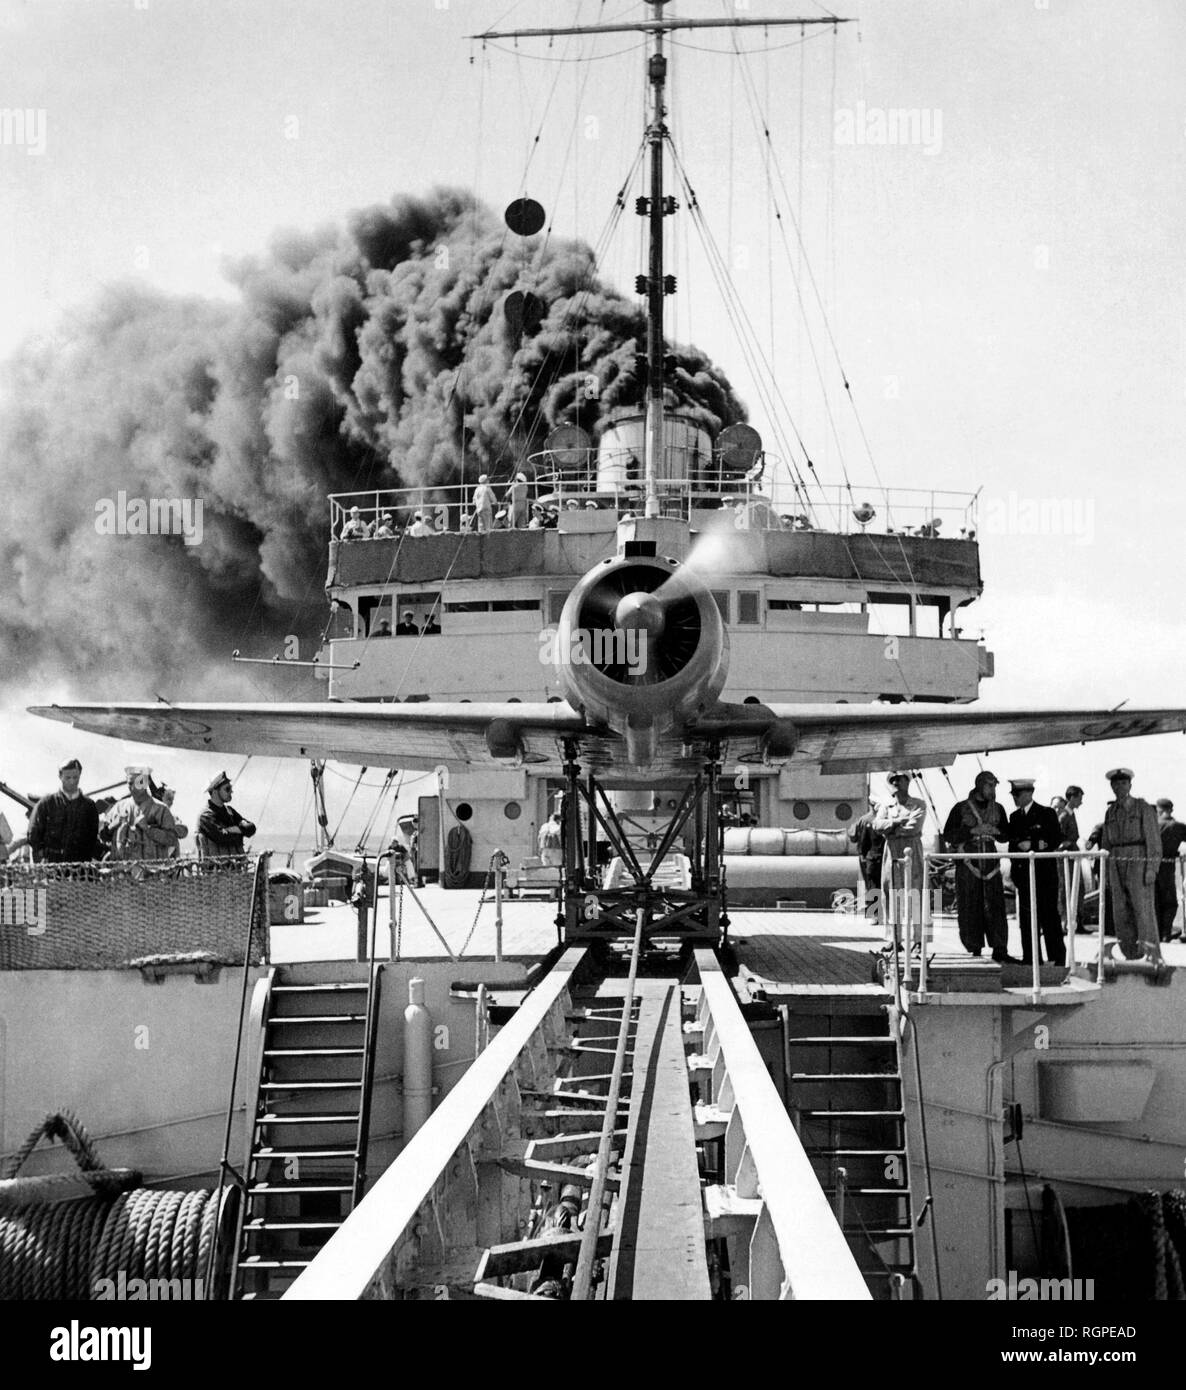 airplane on a flagship, 1947 - Stock Image